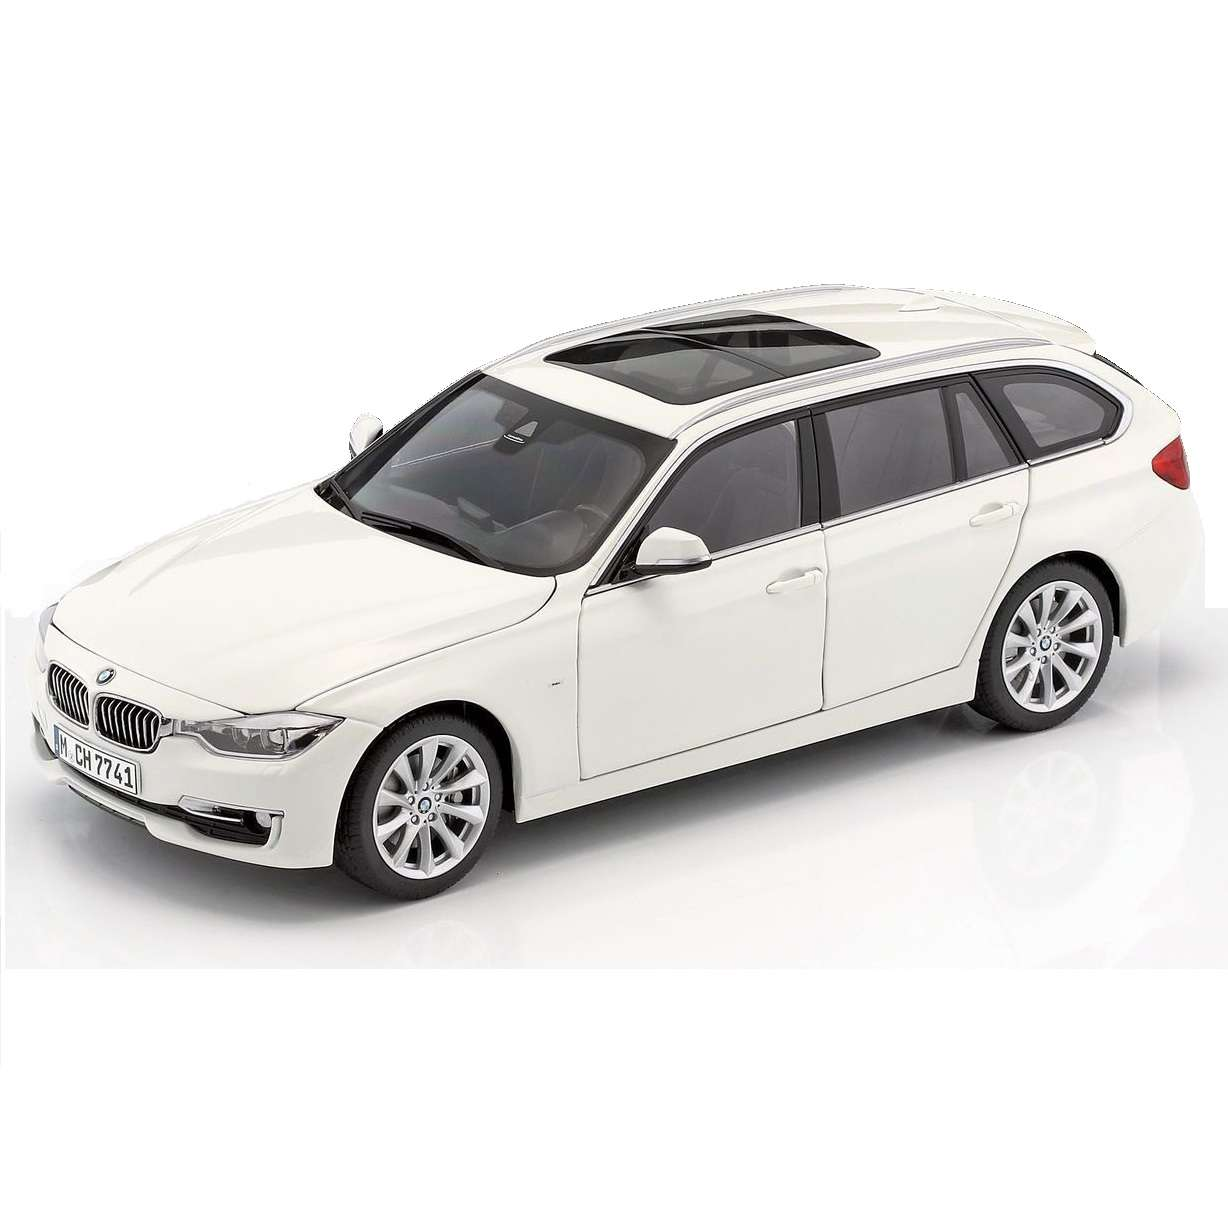 Diecast Car 1/18: Street Cars - BMW 3 Series Touring F31 Photo